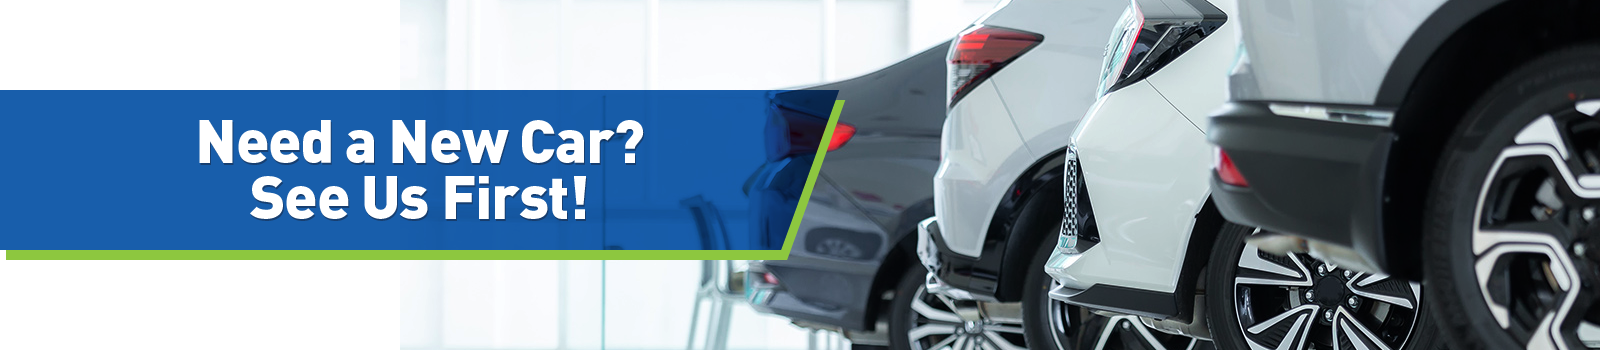 slider-want a new car? See us first!